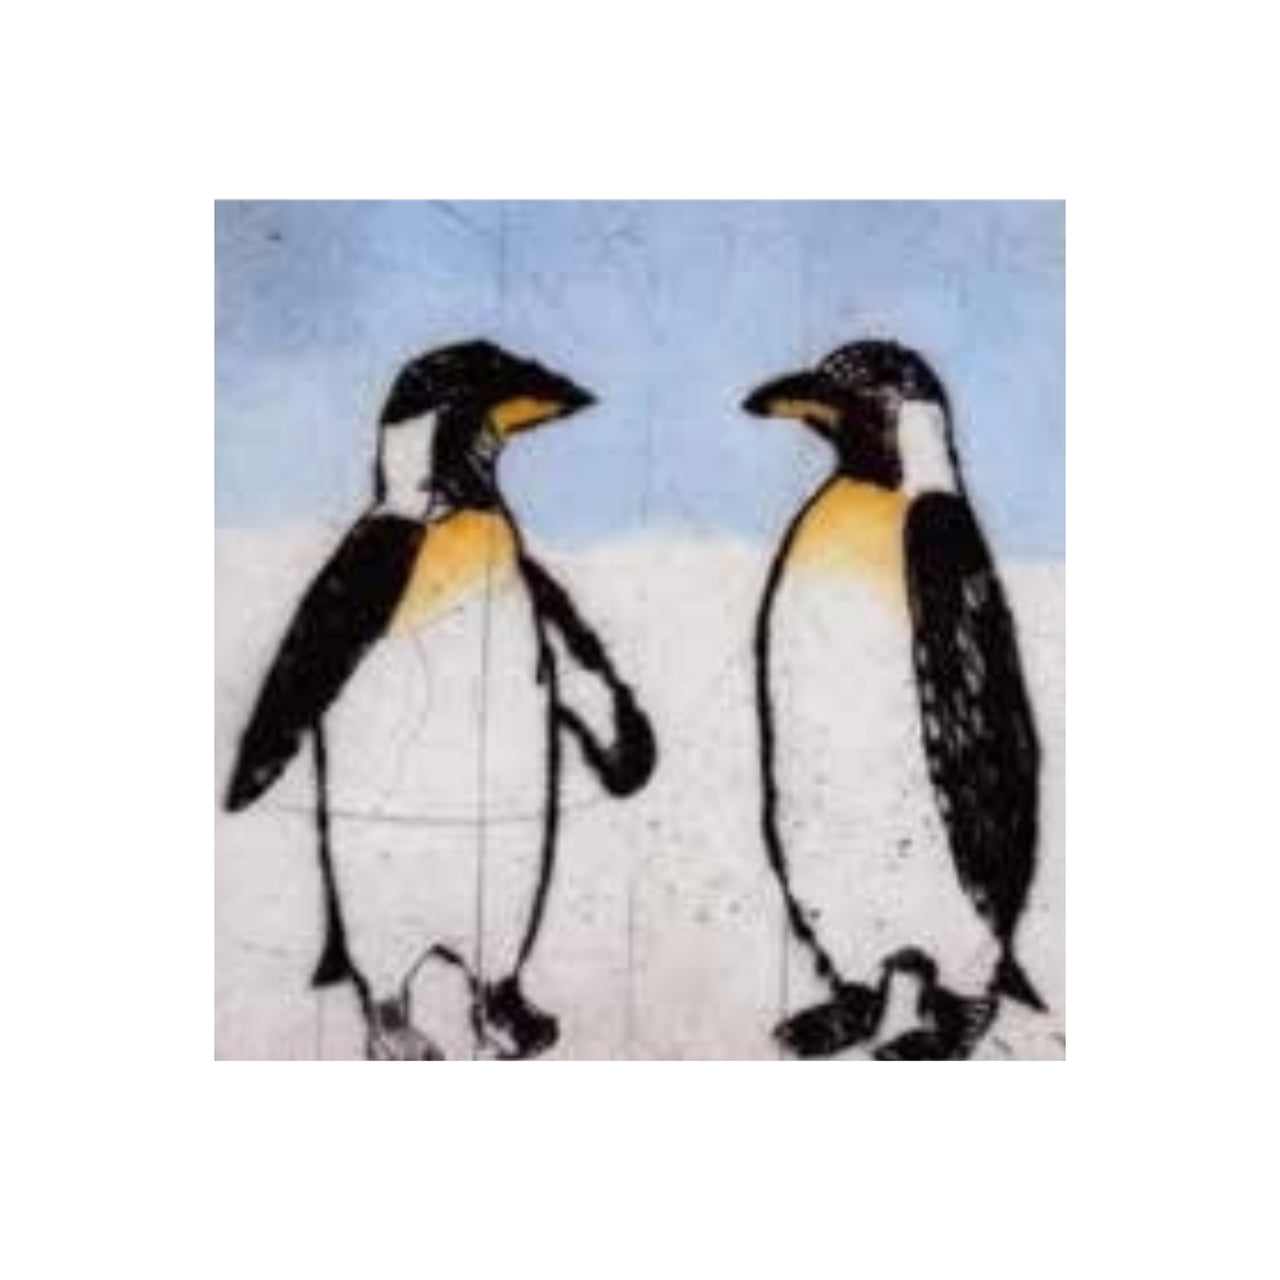 ArtPress - Penguins